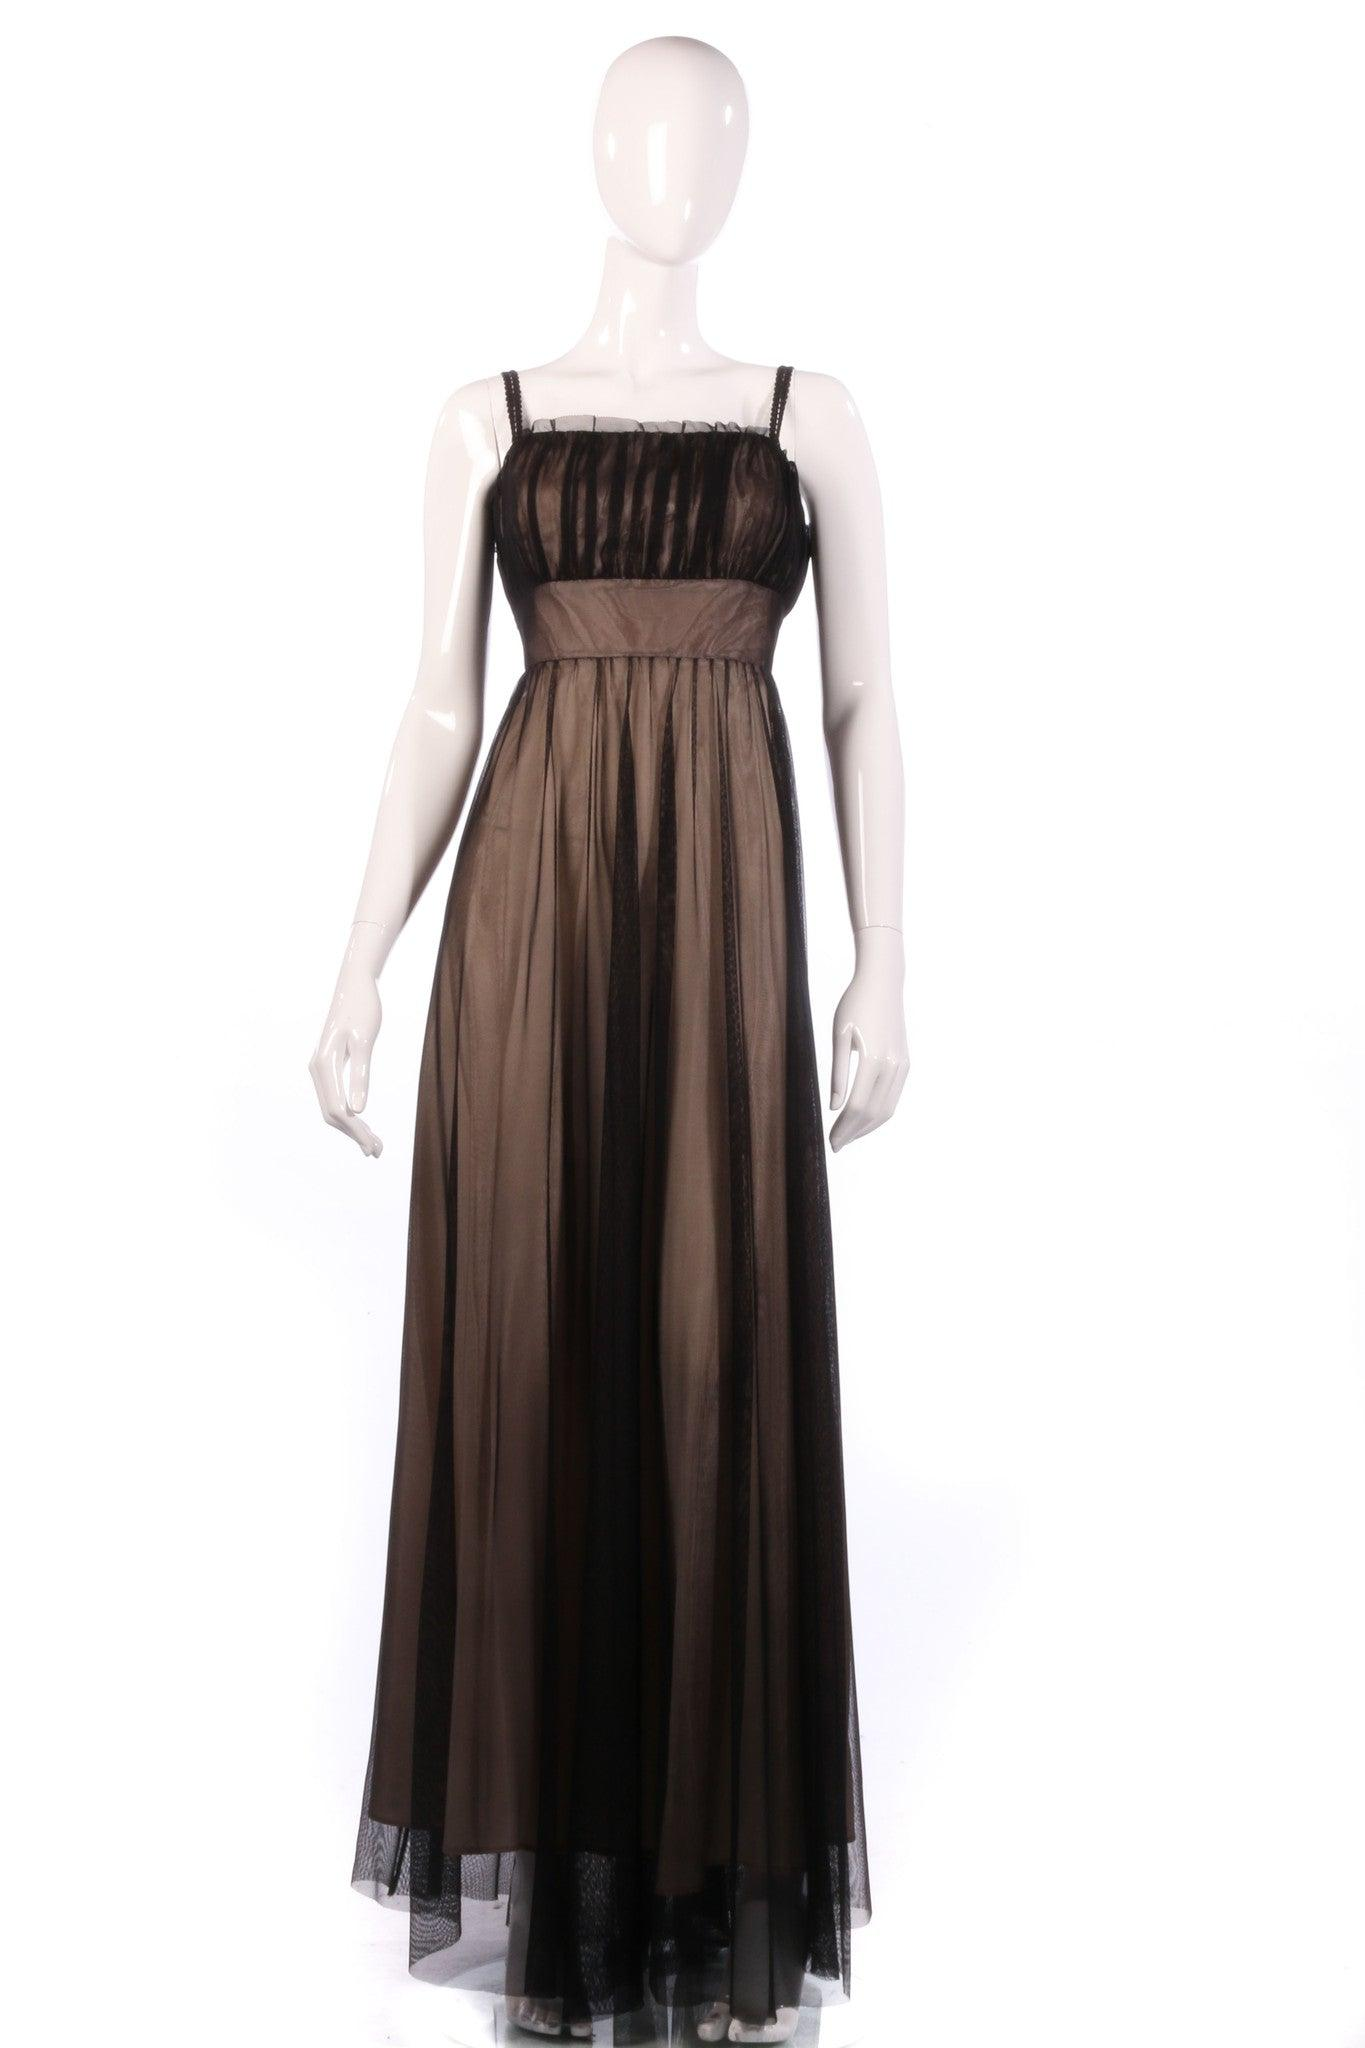 Debut nude and black ball gown size 12/14 – Ava & Iva